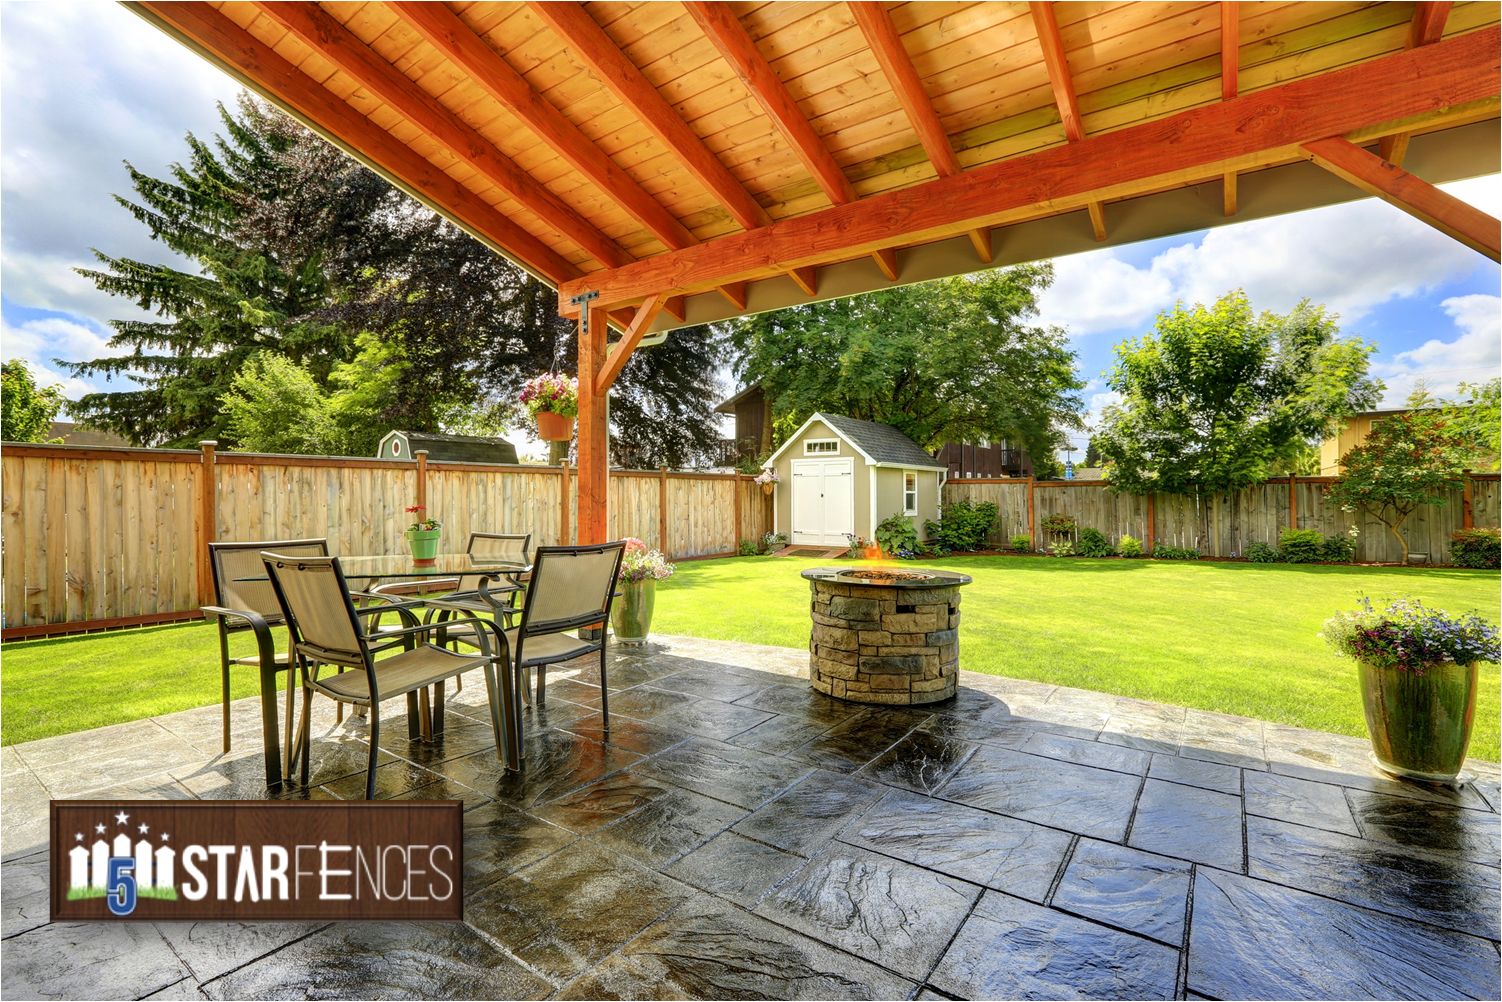 5 Star Fences Patio and Pergola